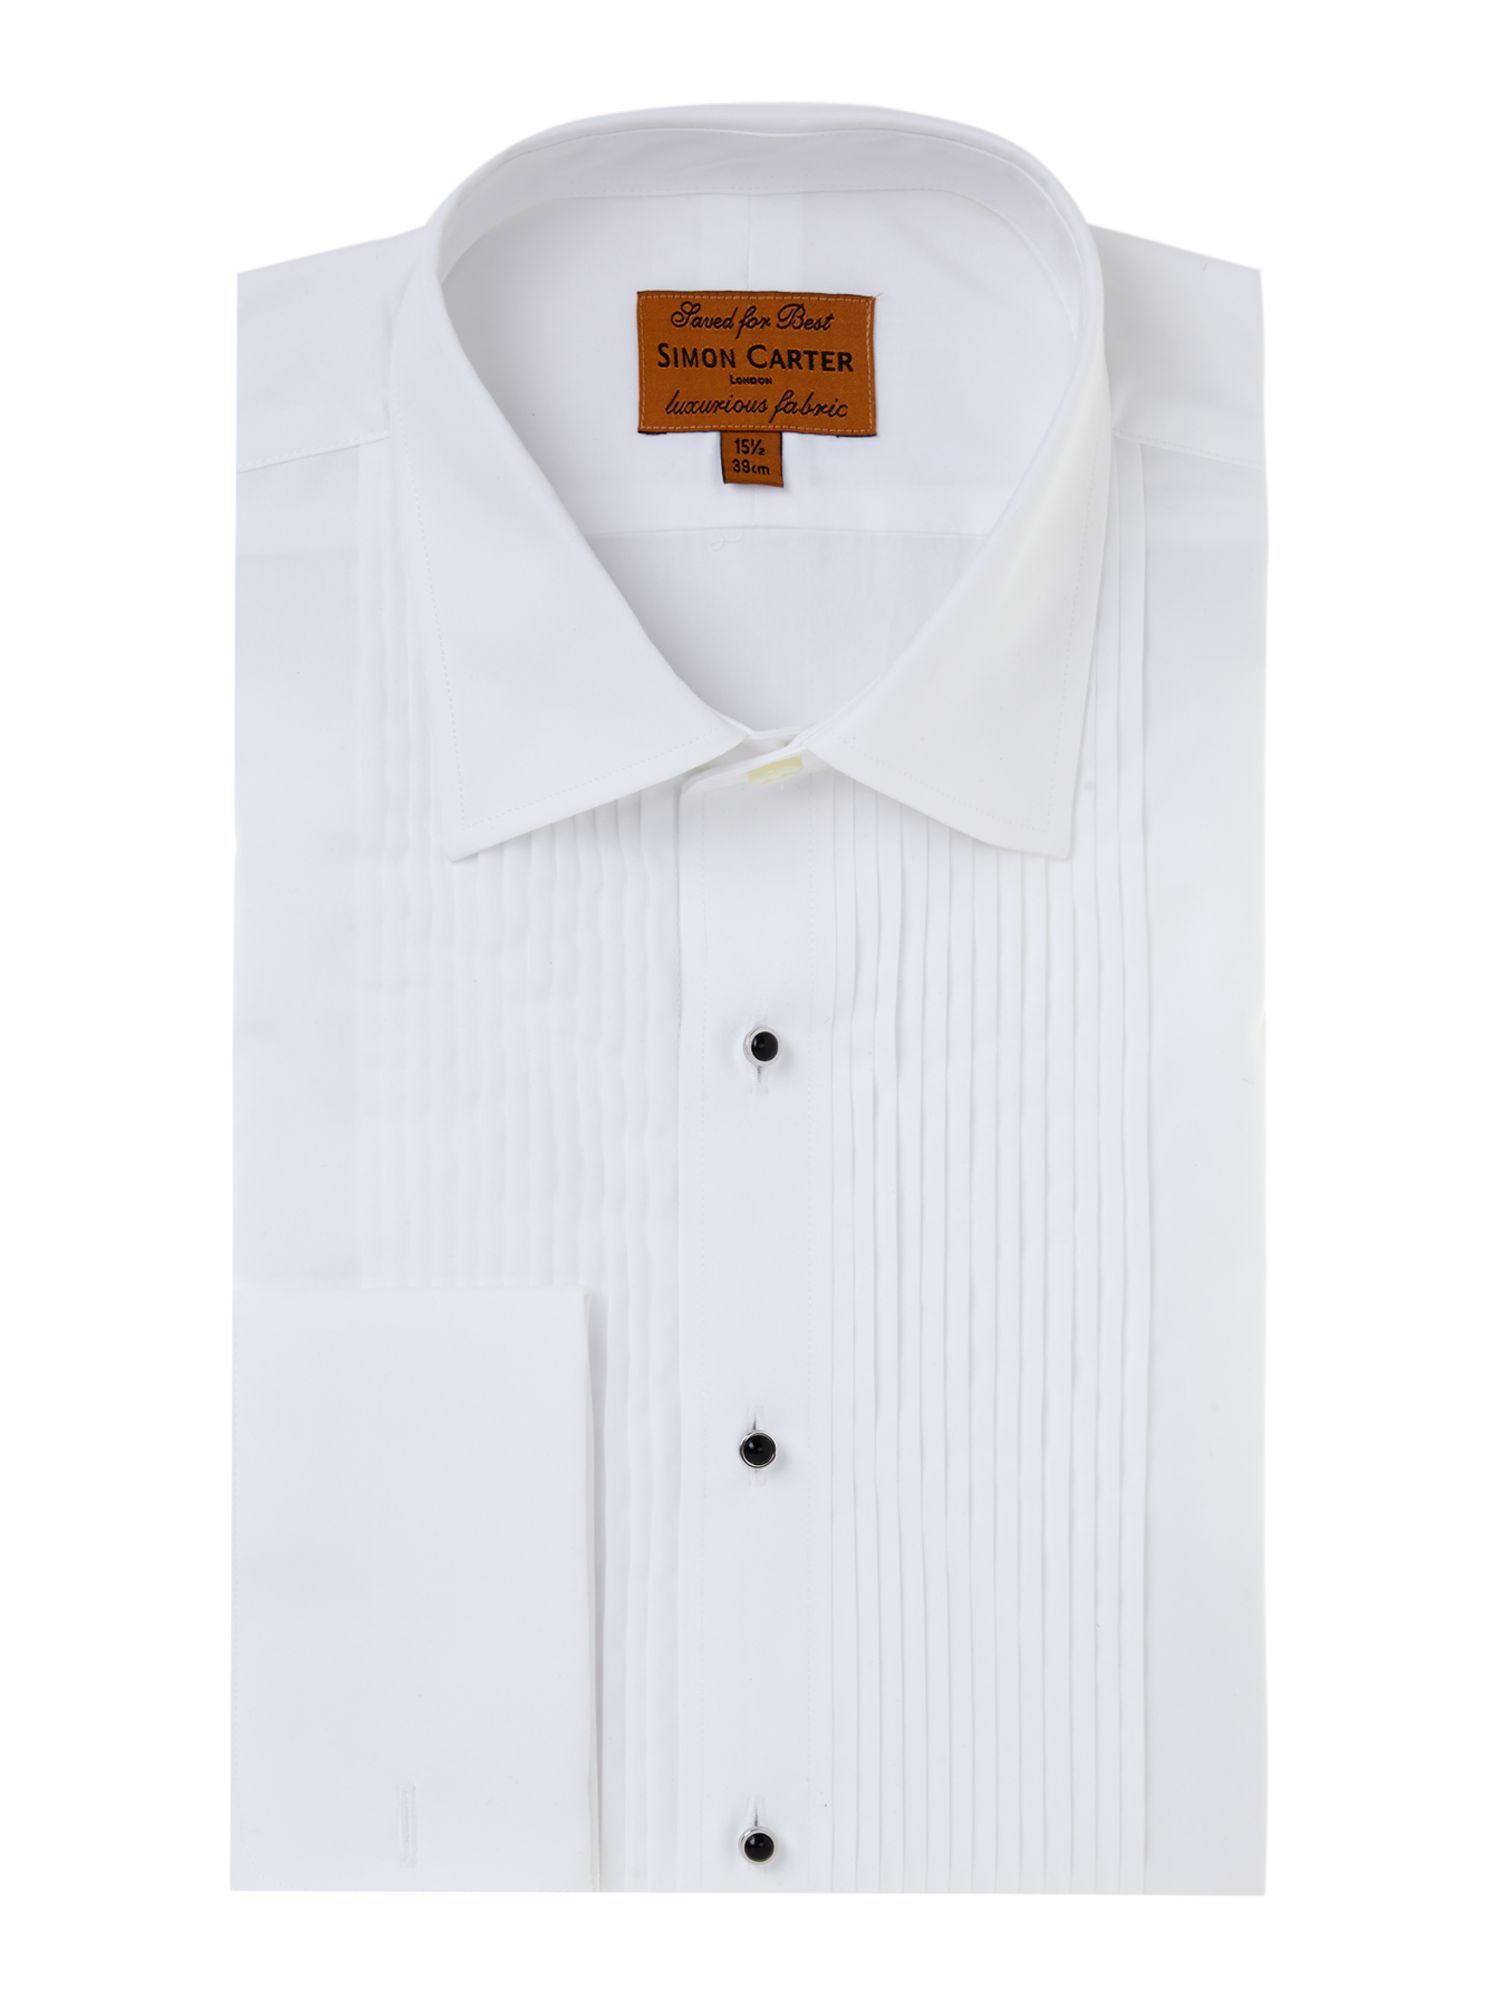 Dress shirt regular fit with double cuff